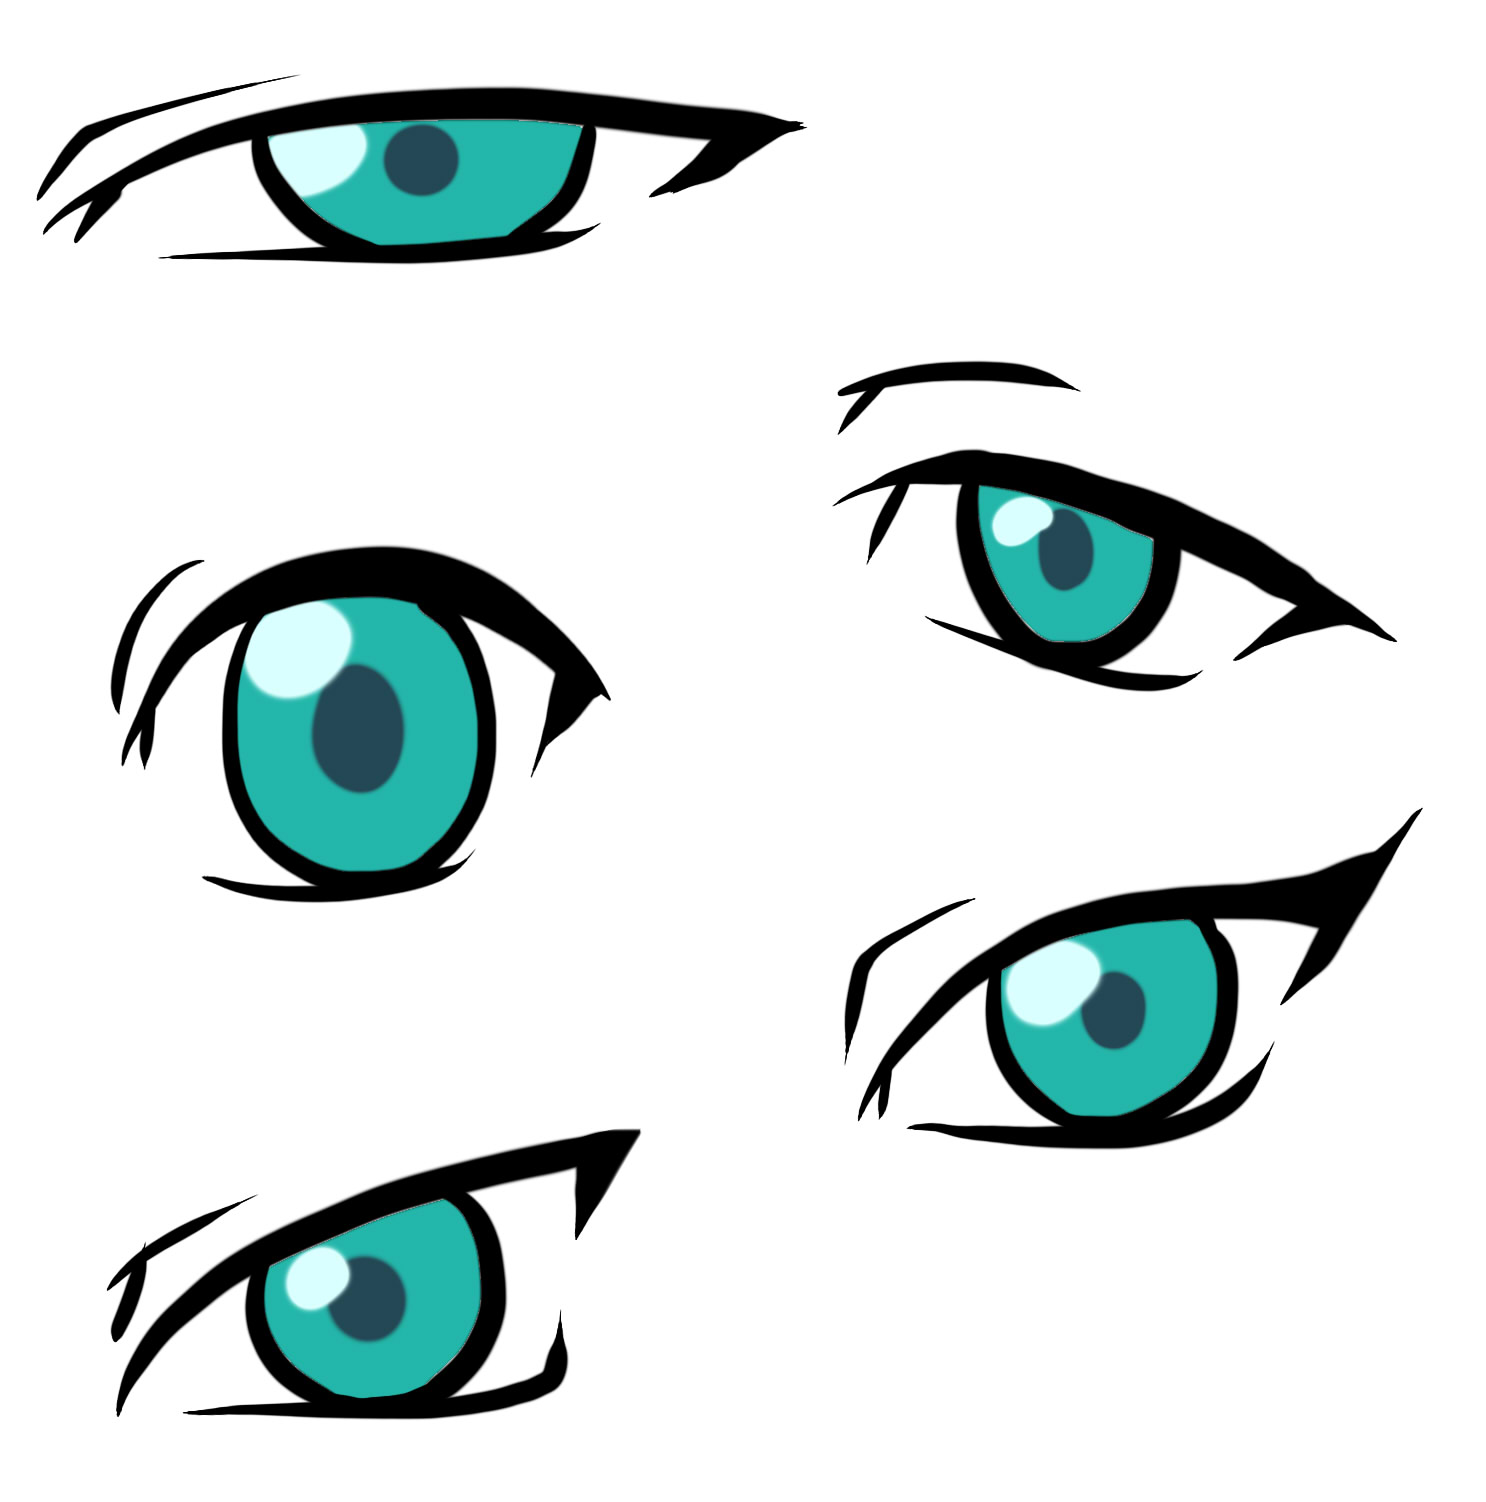 Scary clipart scared eye #15